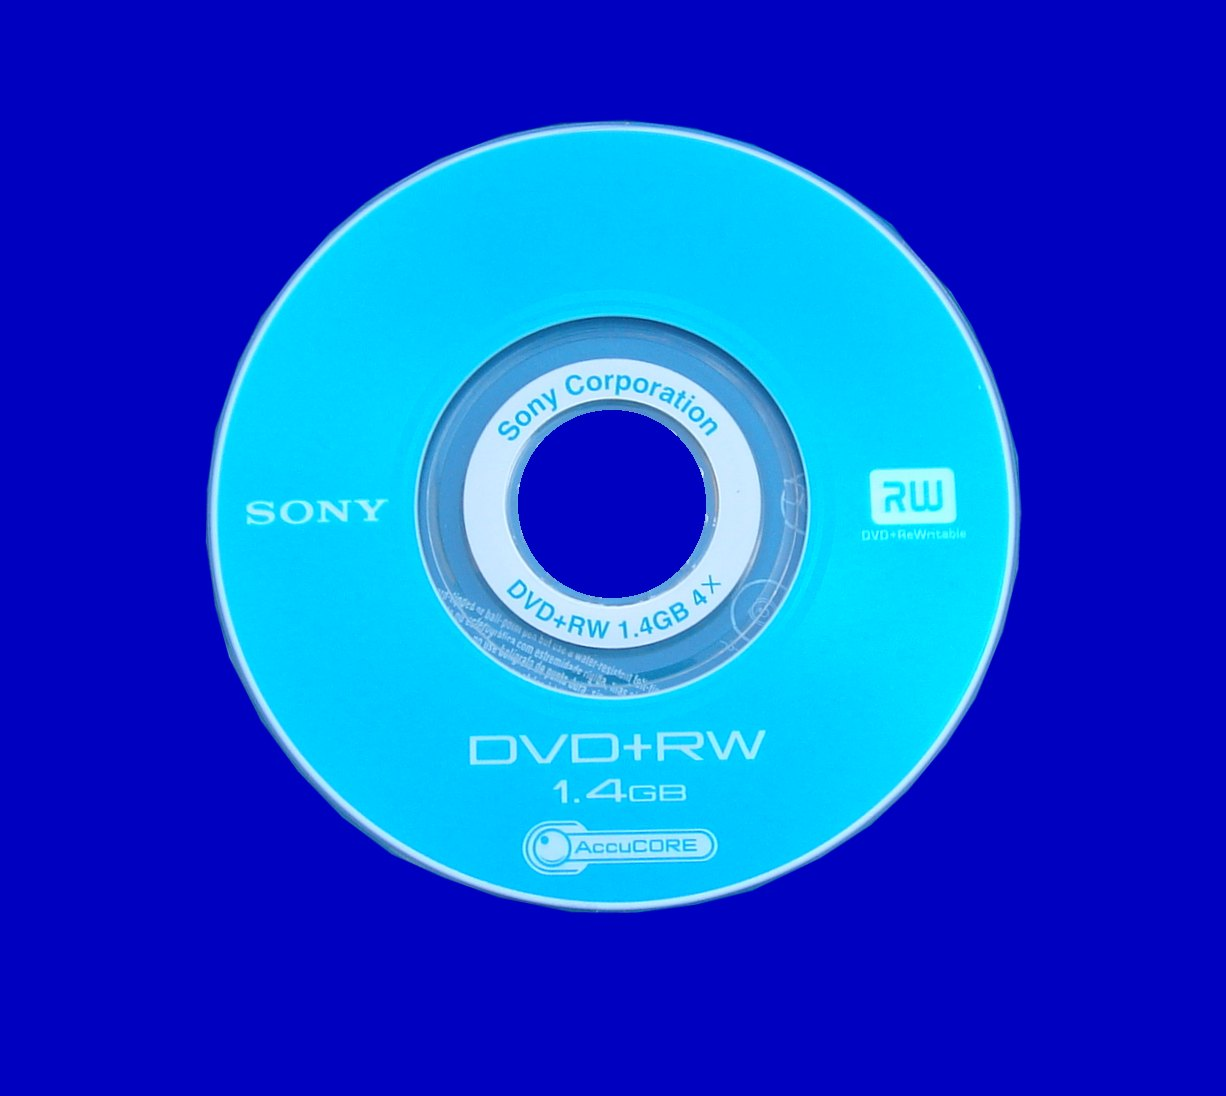 This Sony ReWritable DVD+RW was formatted and appeared empty in the camera.